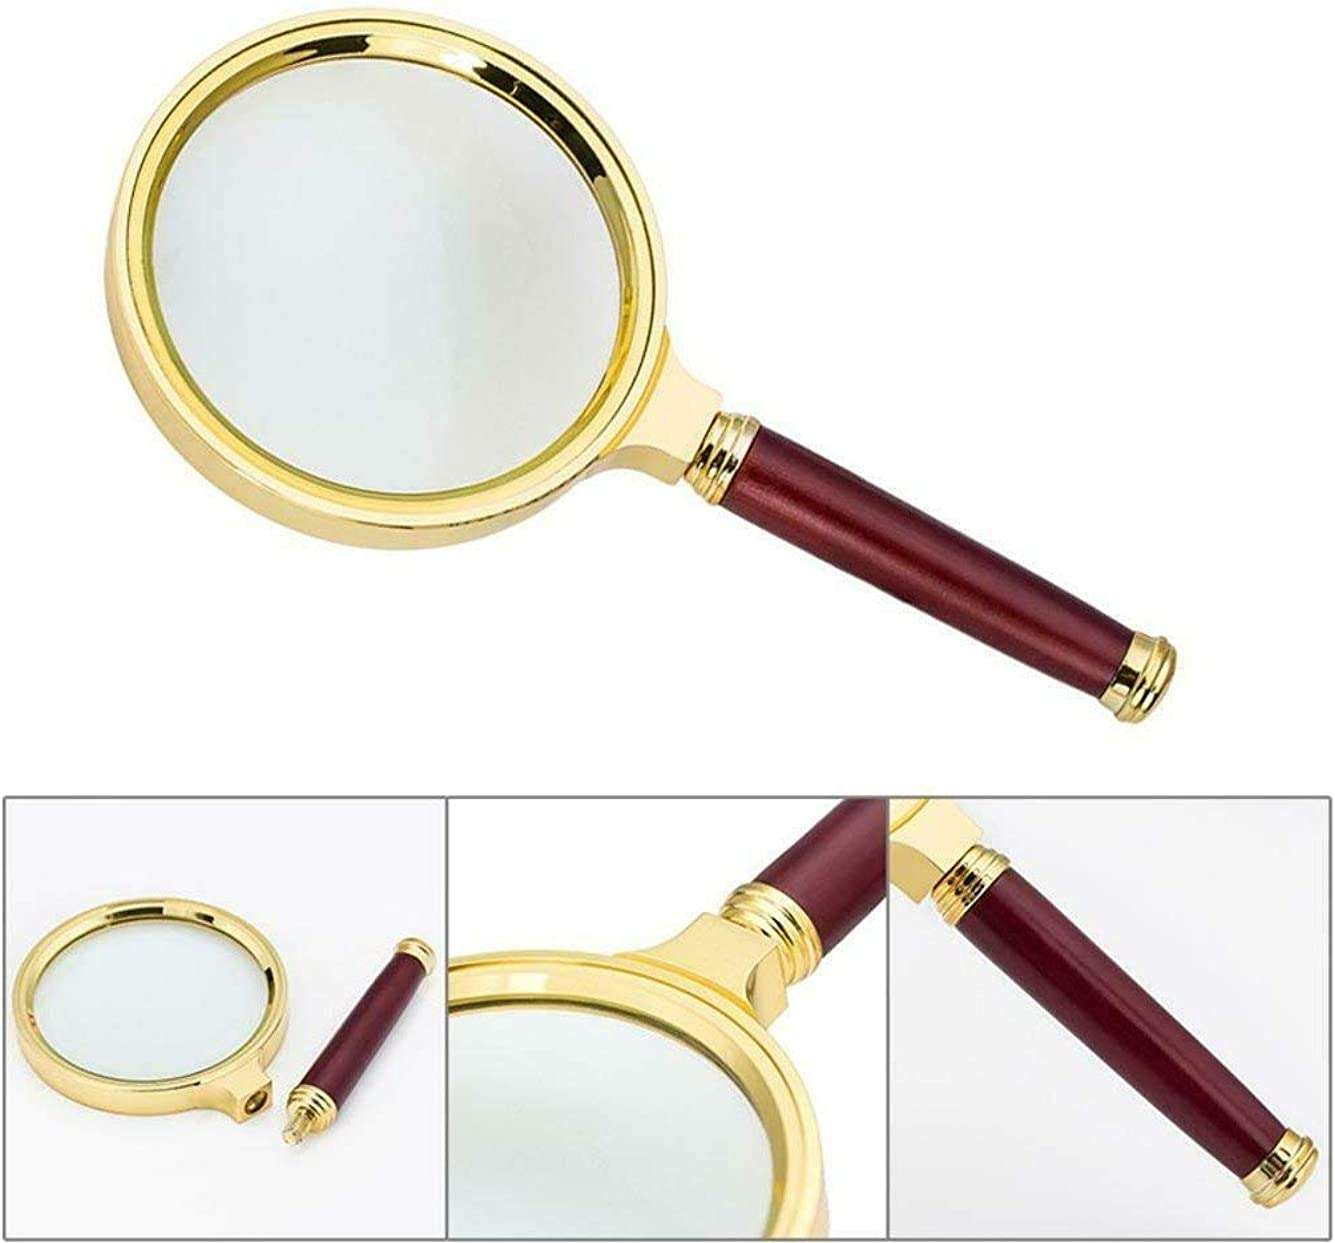 Eland 6 X Magnifier Magnifying Glass Loupe w// 80mm Wood Handle for Reading